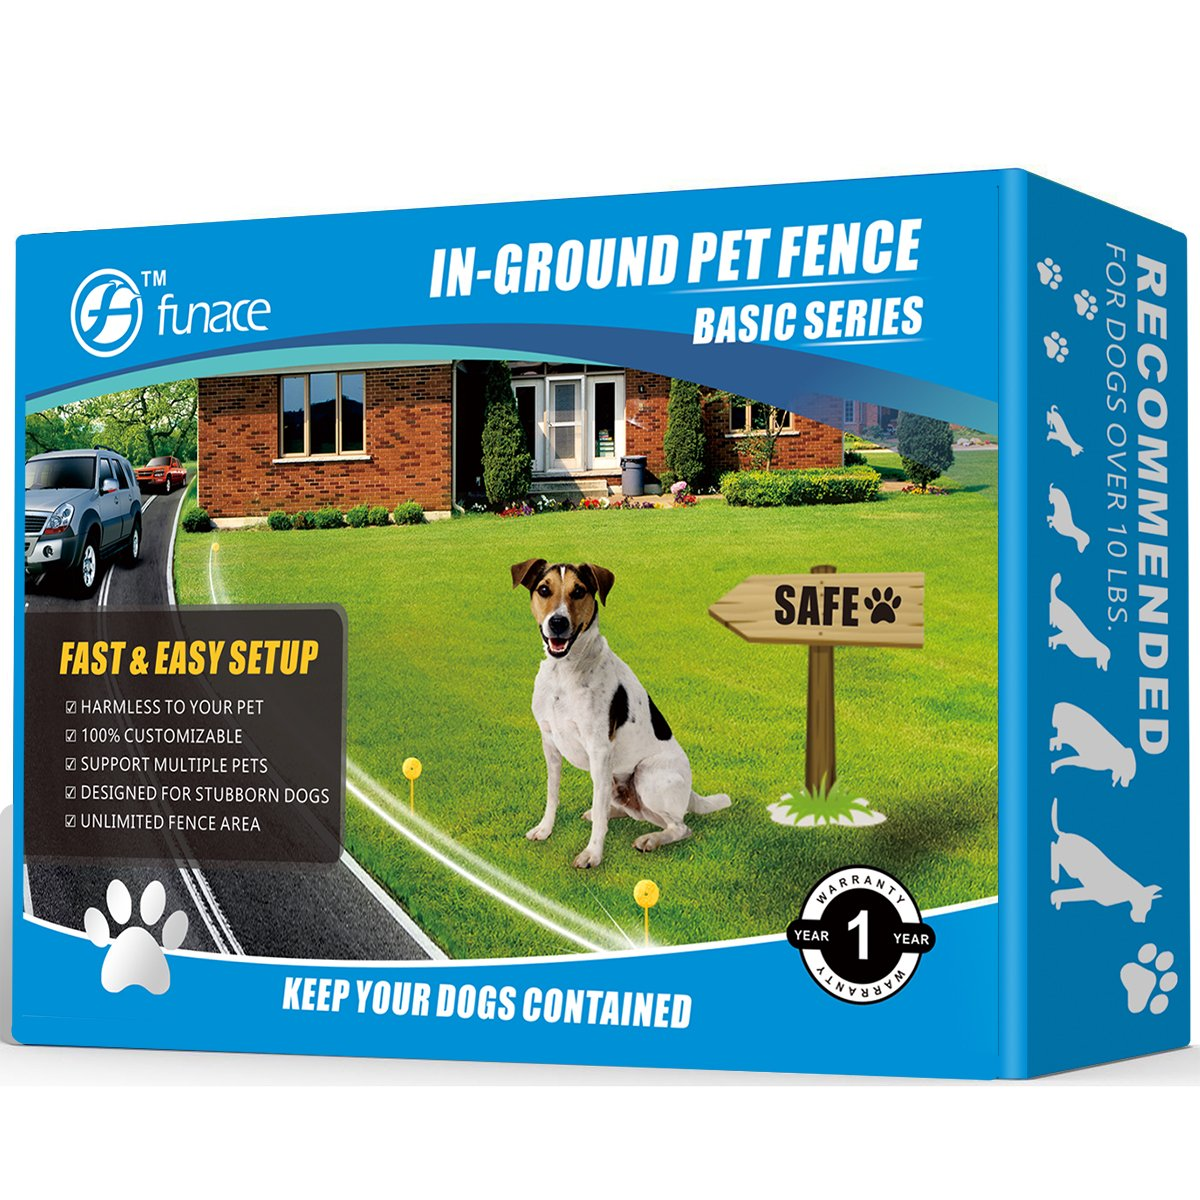 Radio Wave Electric Dog Fence System by FunAce - Invisible In-Ground Wired Pet Containment Kit - Support Small Medium Large Stubborn Dogs over 10 lbs. - Beep & Shock Rechargeable Collar (2 Dogs)